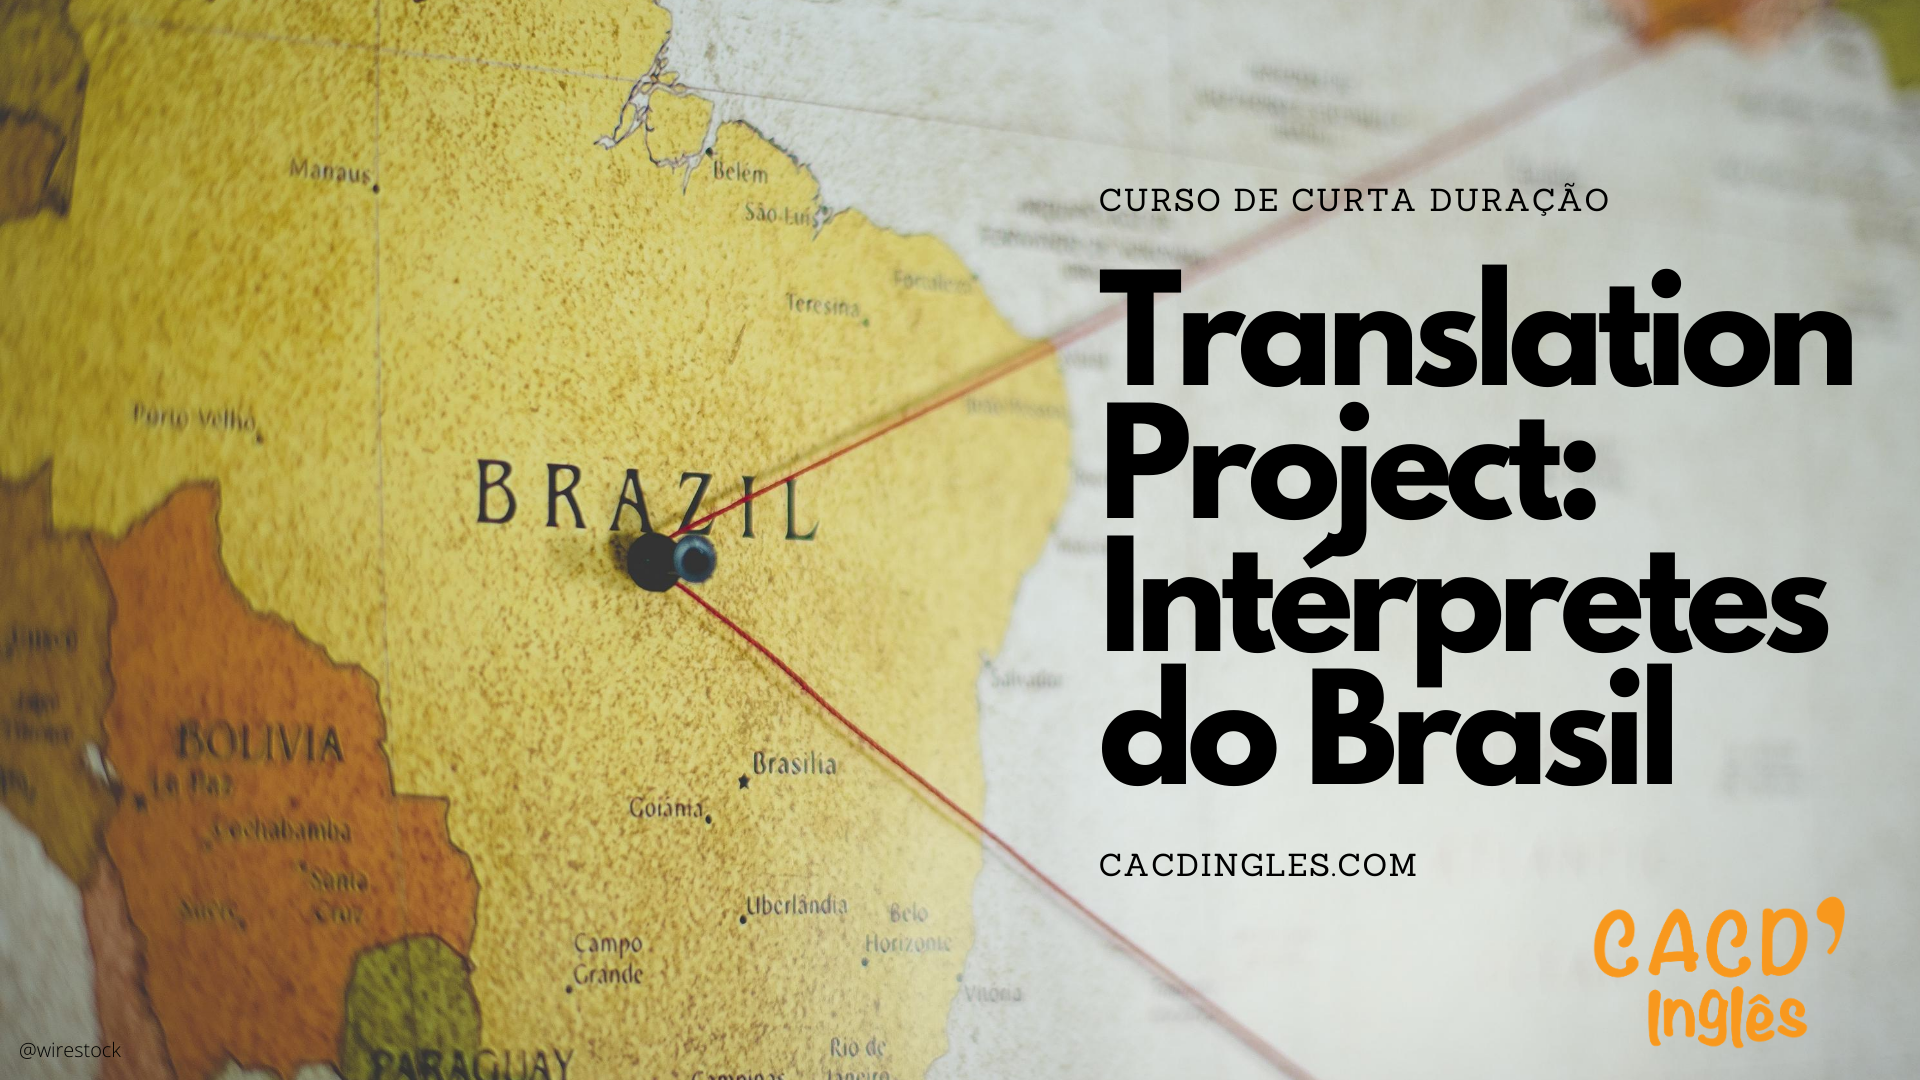 Translation Project: Intérpretes do Brasil